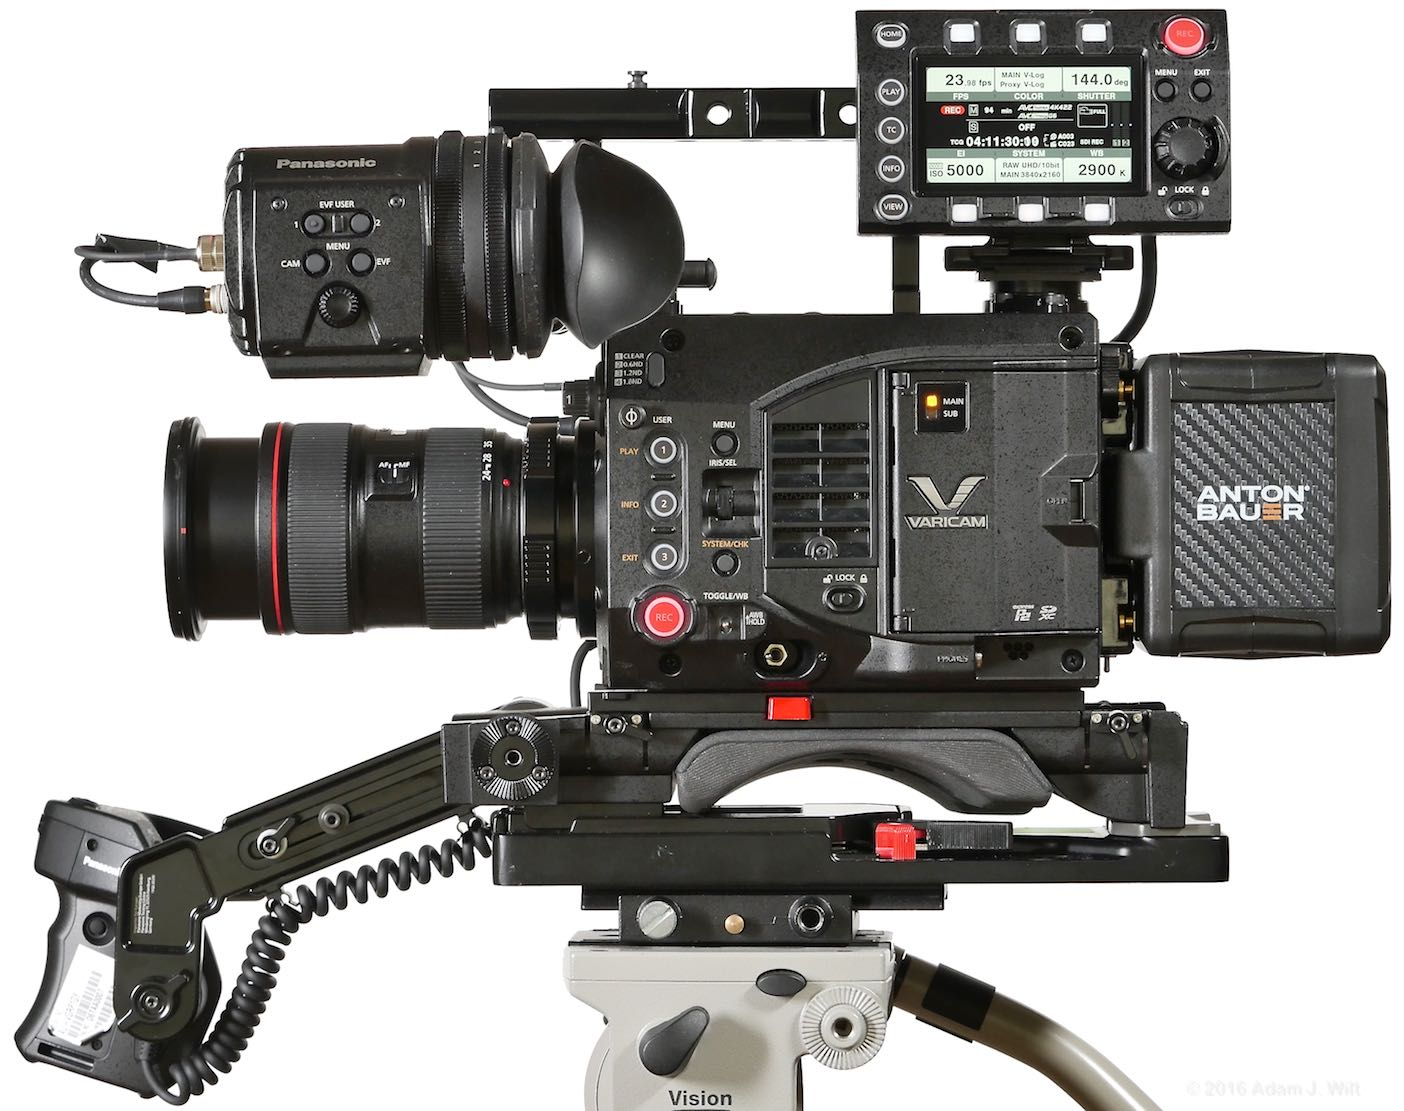 VariCam LT side view with control panel